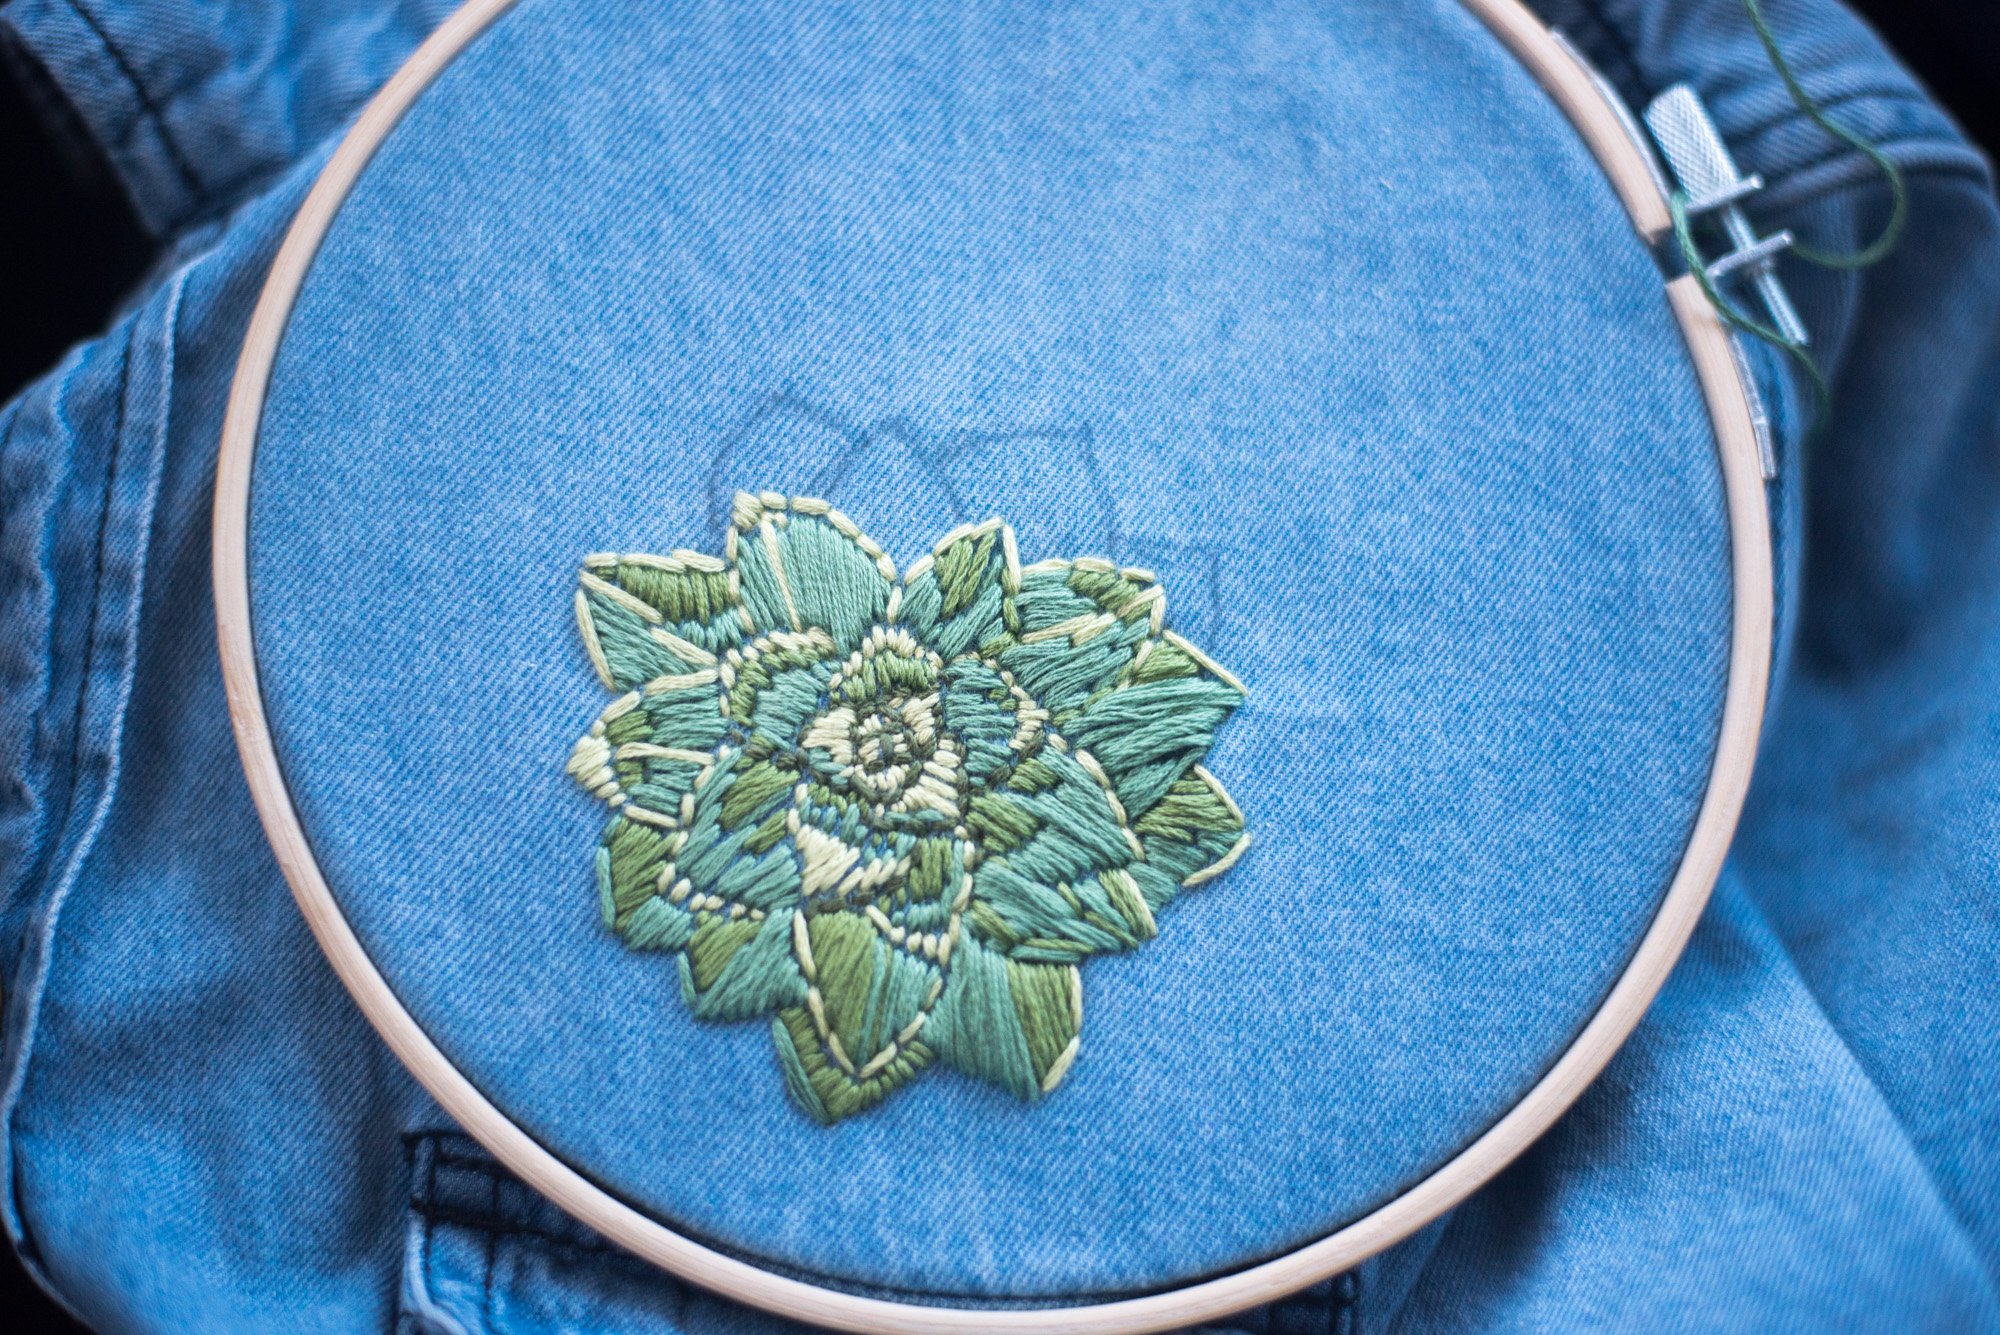 diy embroidery